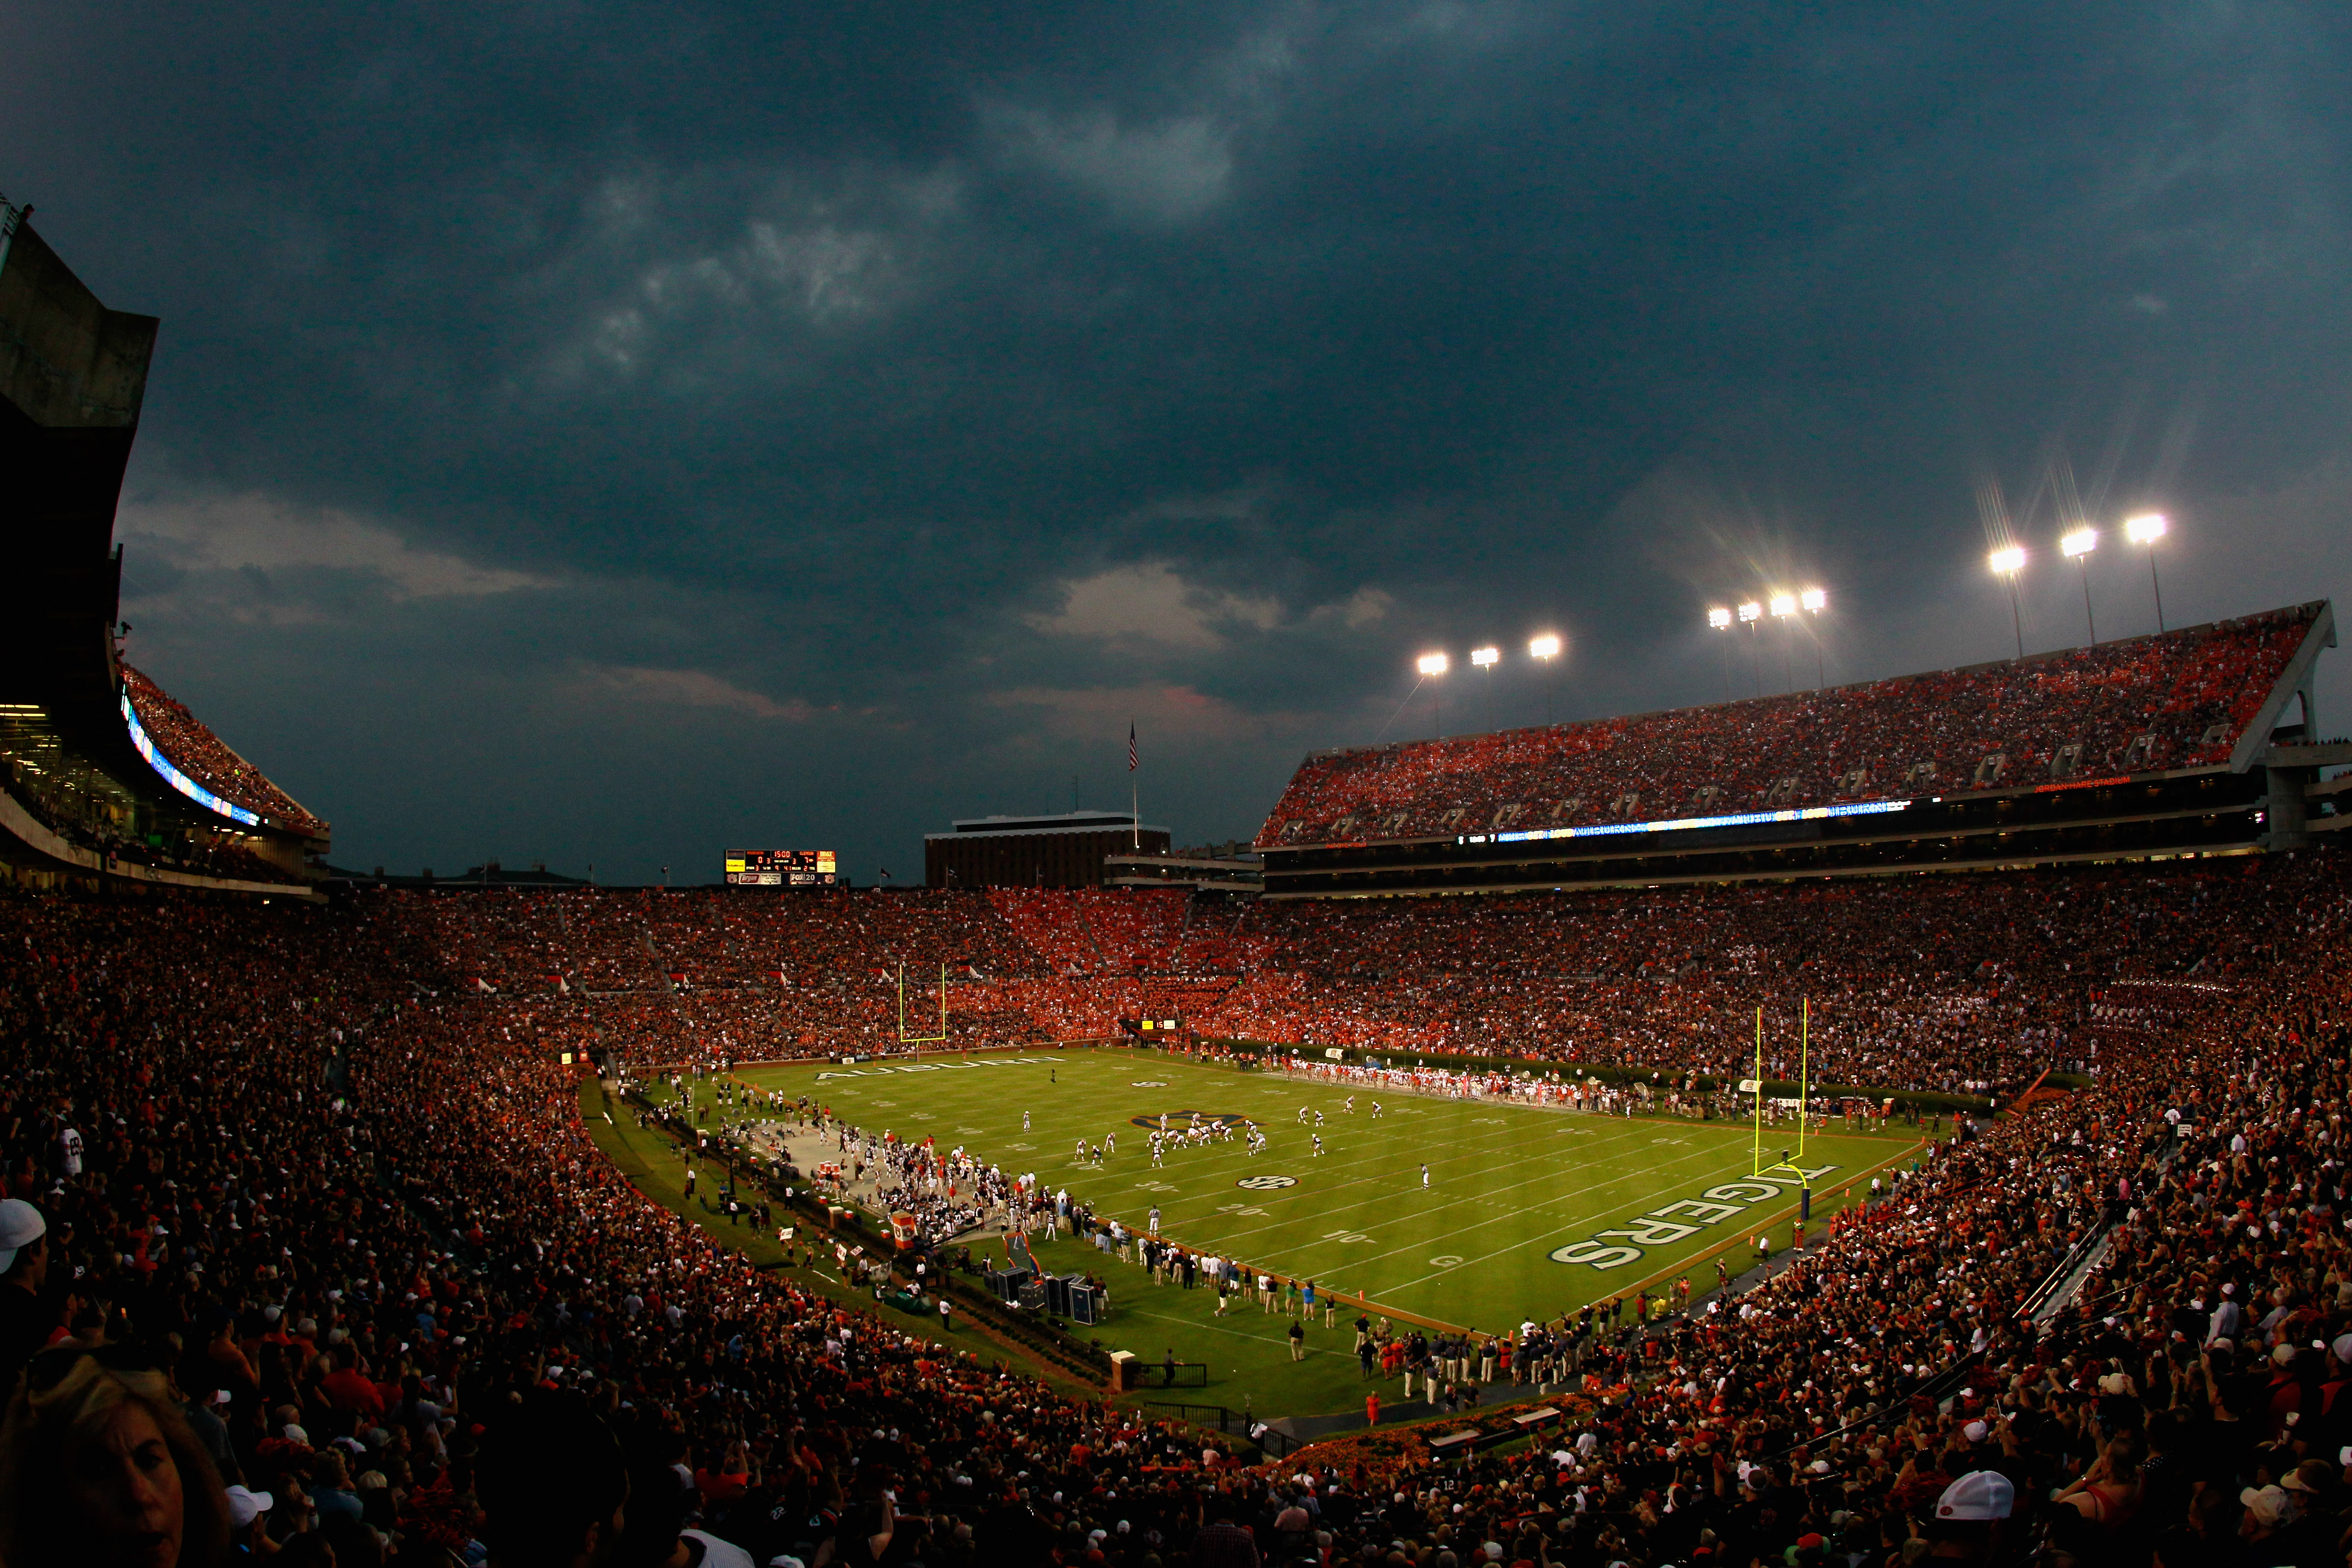 AUBURN, AL - SEPTEMBER 18:  A general view of Jordan-Hare Stadium during the game between the Auburn Tigers and the Clemson Tigers at Jordan-Hare Stadium on September 18, 2010 in Auburn, Alabama.  (Photo by Kevin C. Cox/Getty Images)